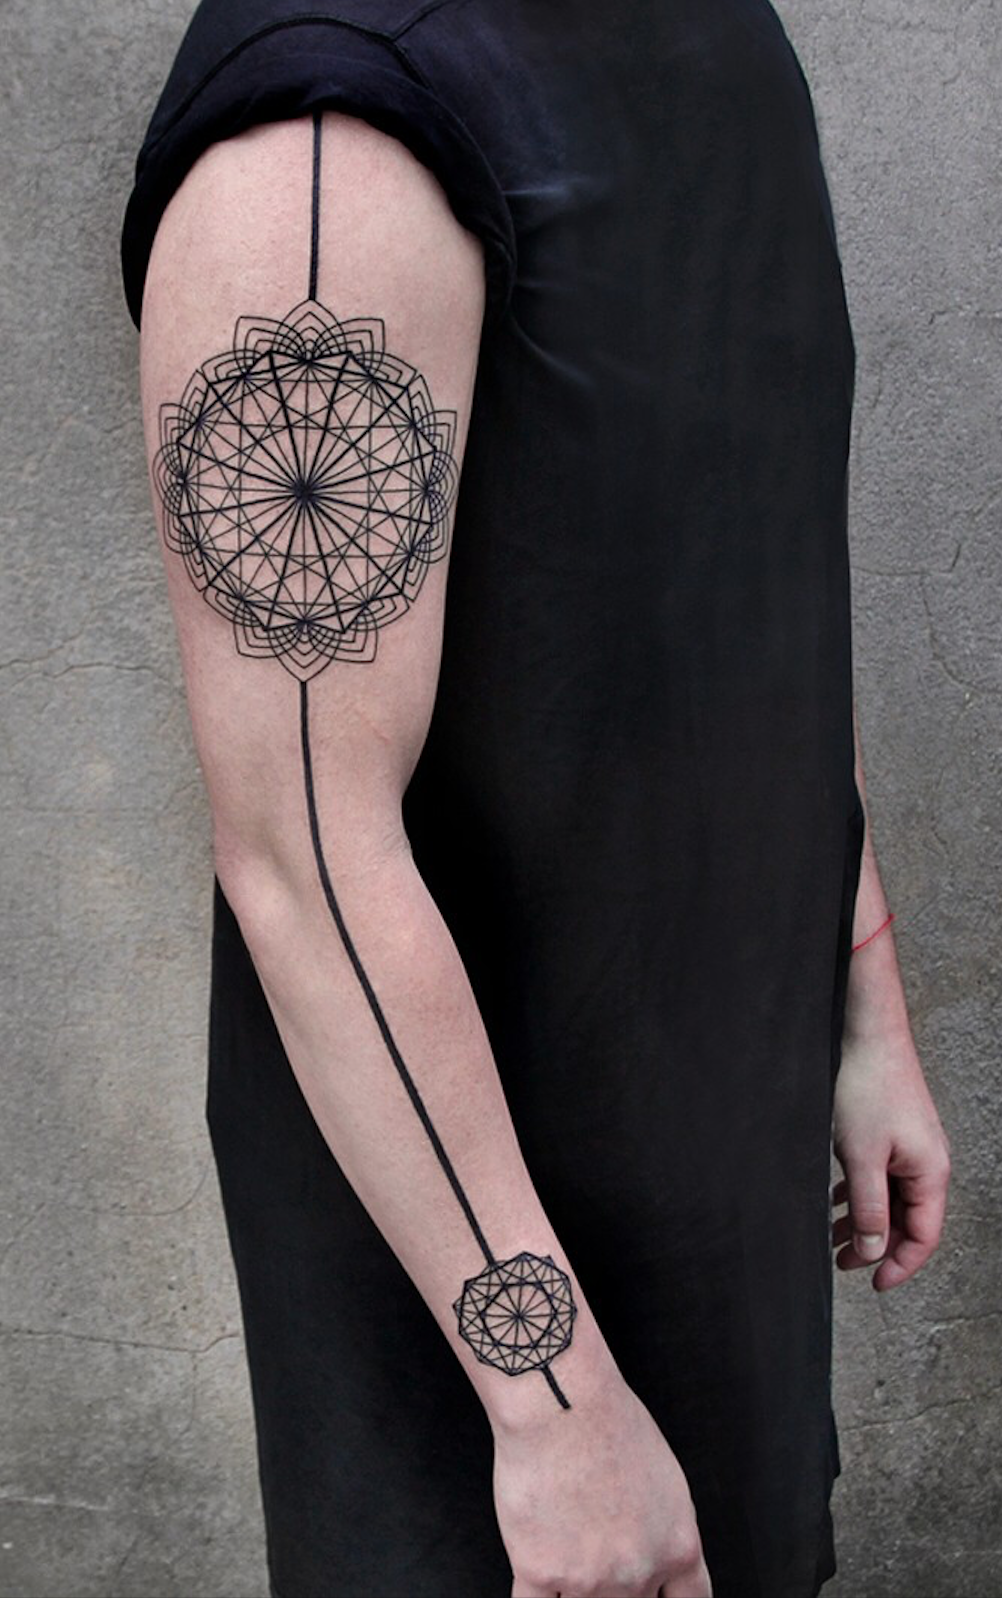 24 Creative Arm Tattoo Designs For Men That All Women Love A Simple Linework Or Geometric Design Is Mor Tattoos For Women Arm Tattoos For Women Tattoo Designs